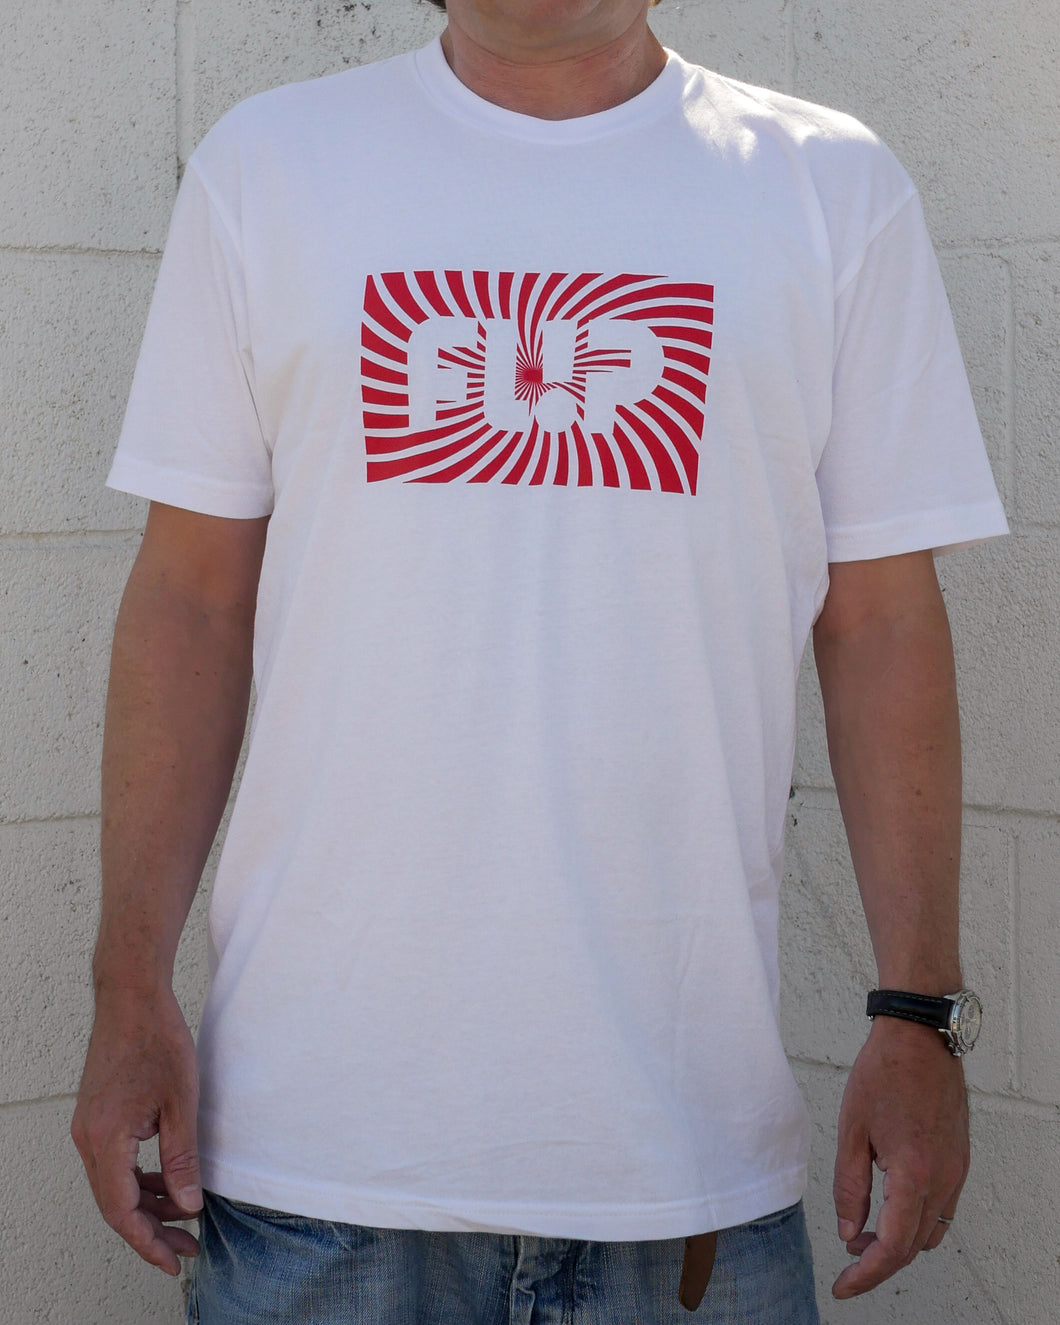 Spiral Logo t-shirt - Black or White Colorways - (free USA shipping)